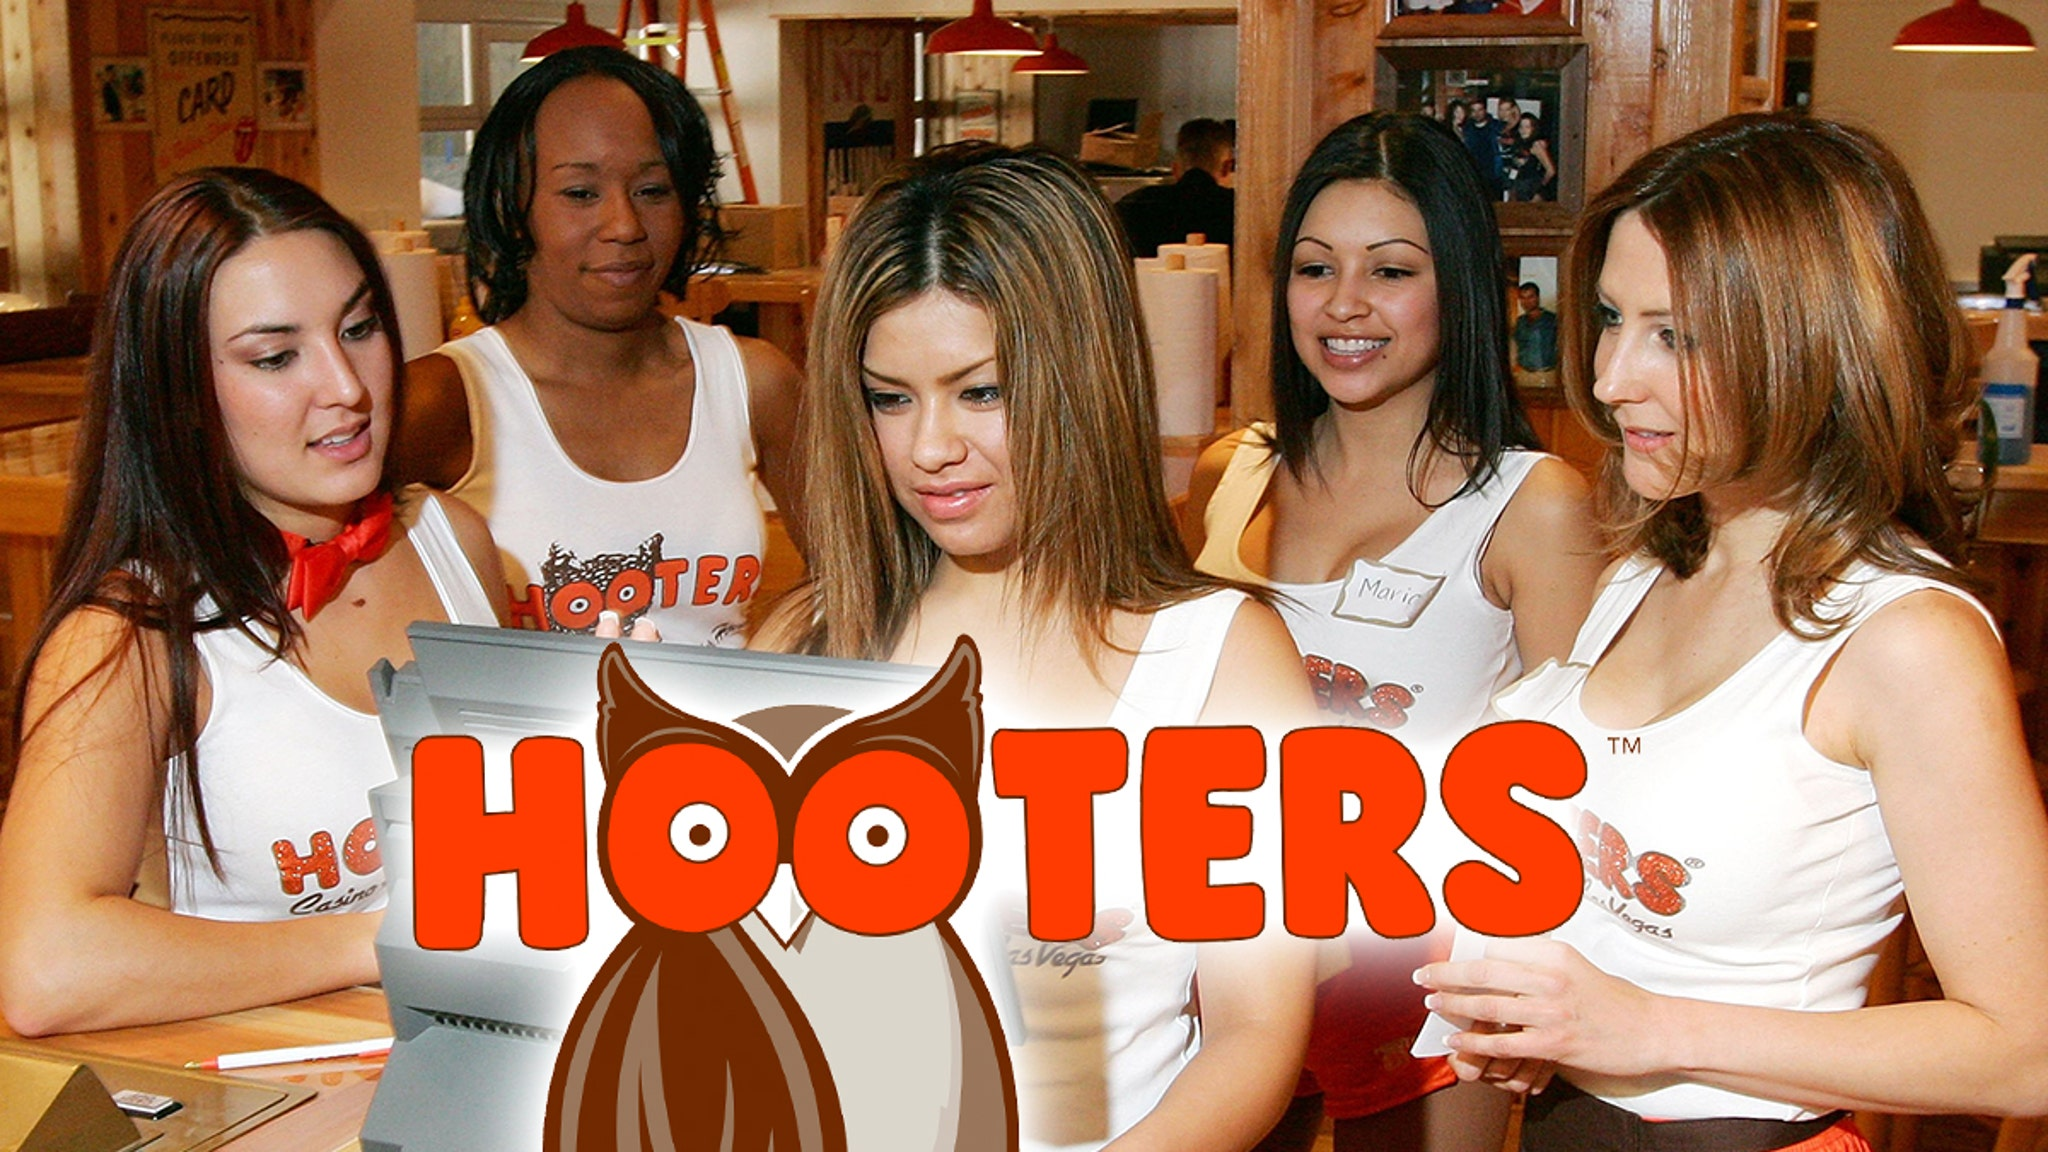 Hooters Backtracks from New Panties-Style Uniforms After Outcry